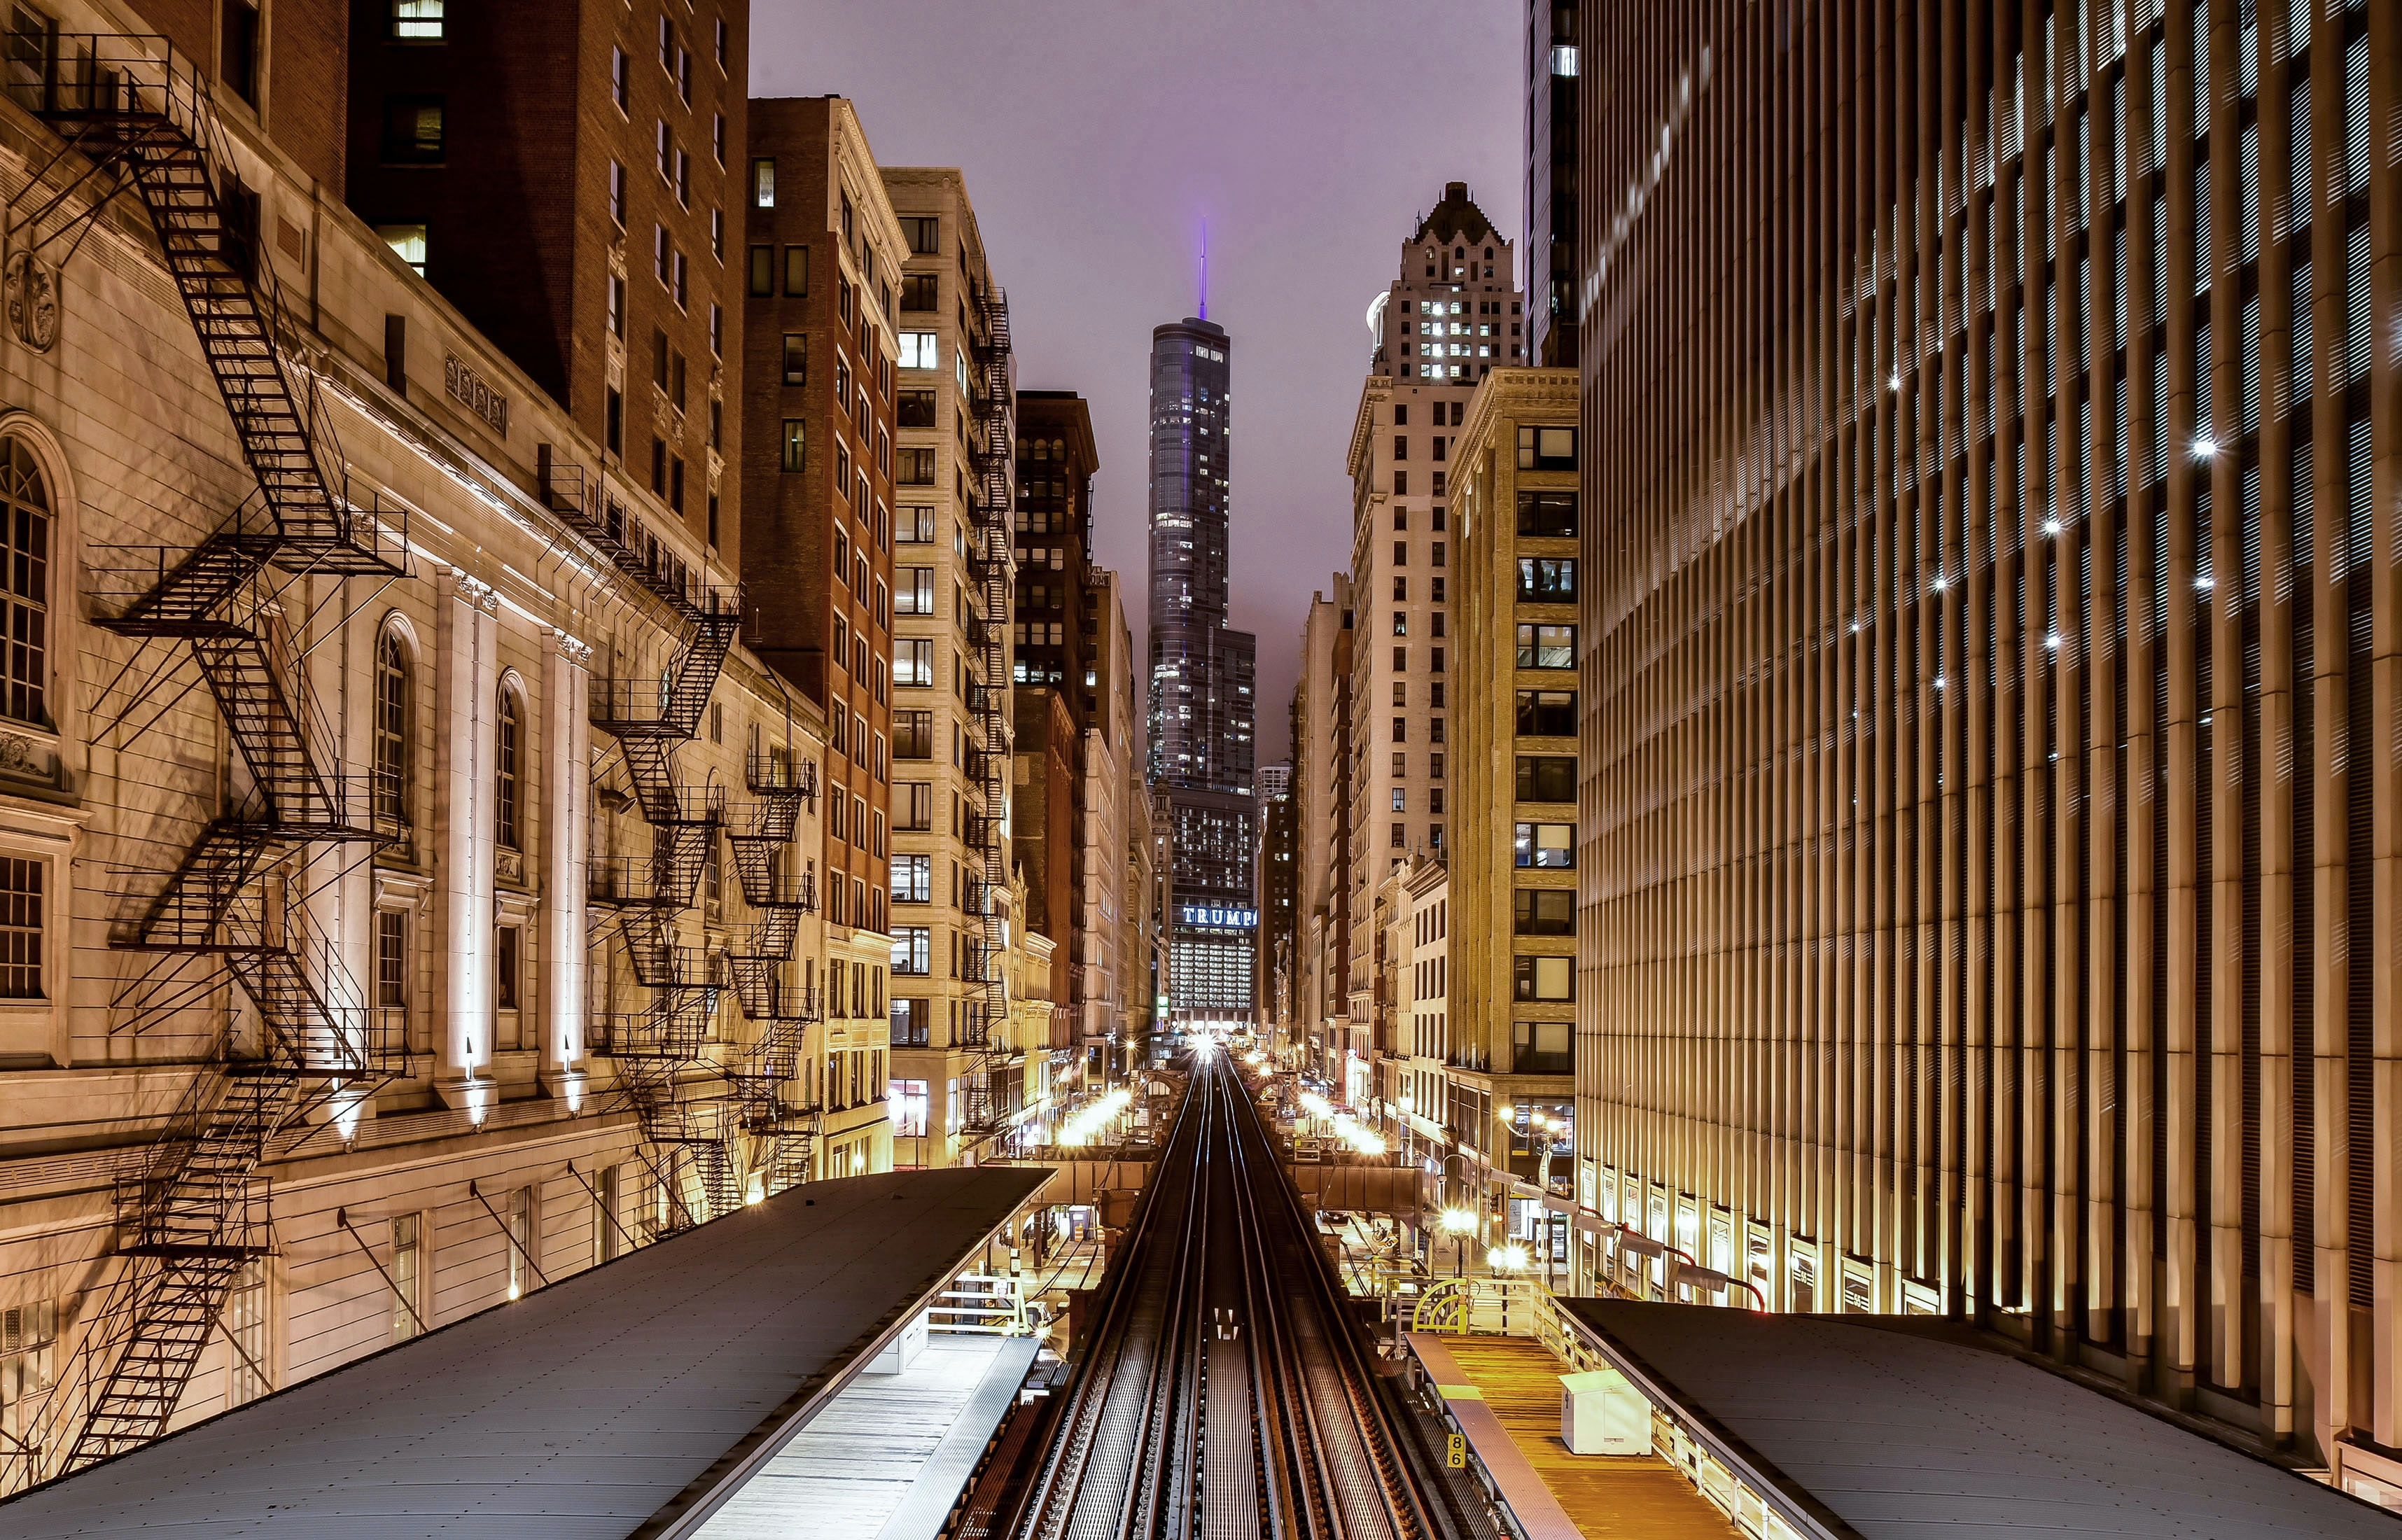 The Adams/Wabash railway station between high-rises in Chicago at night